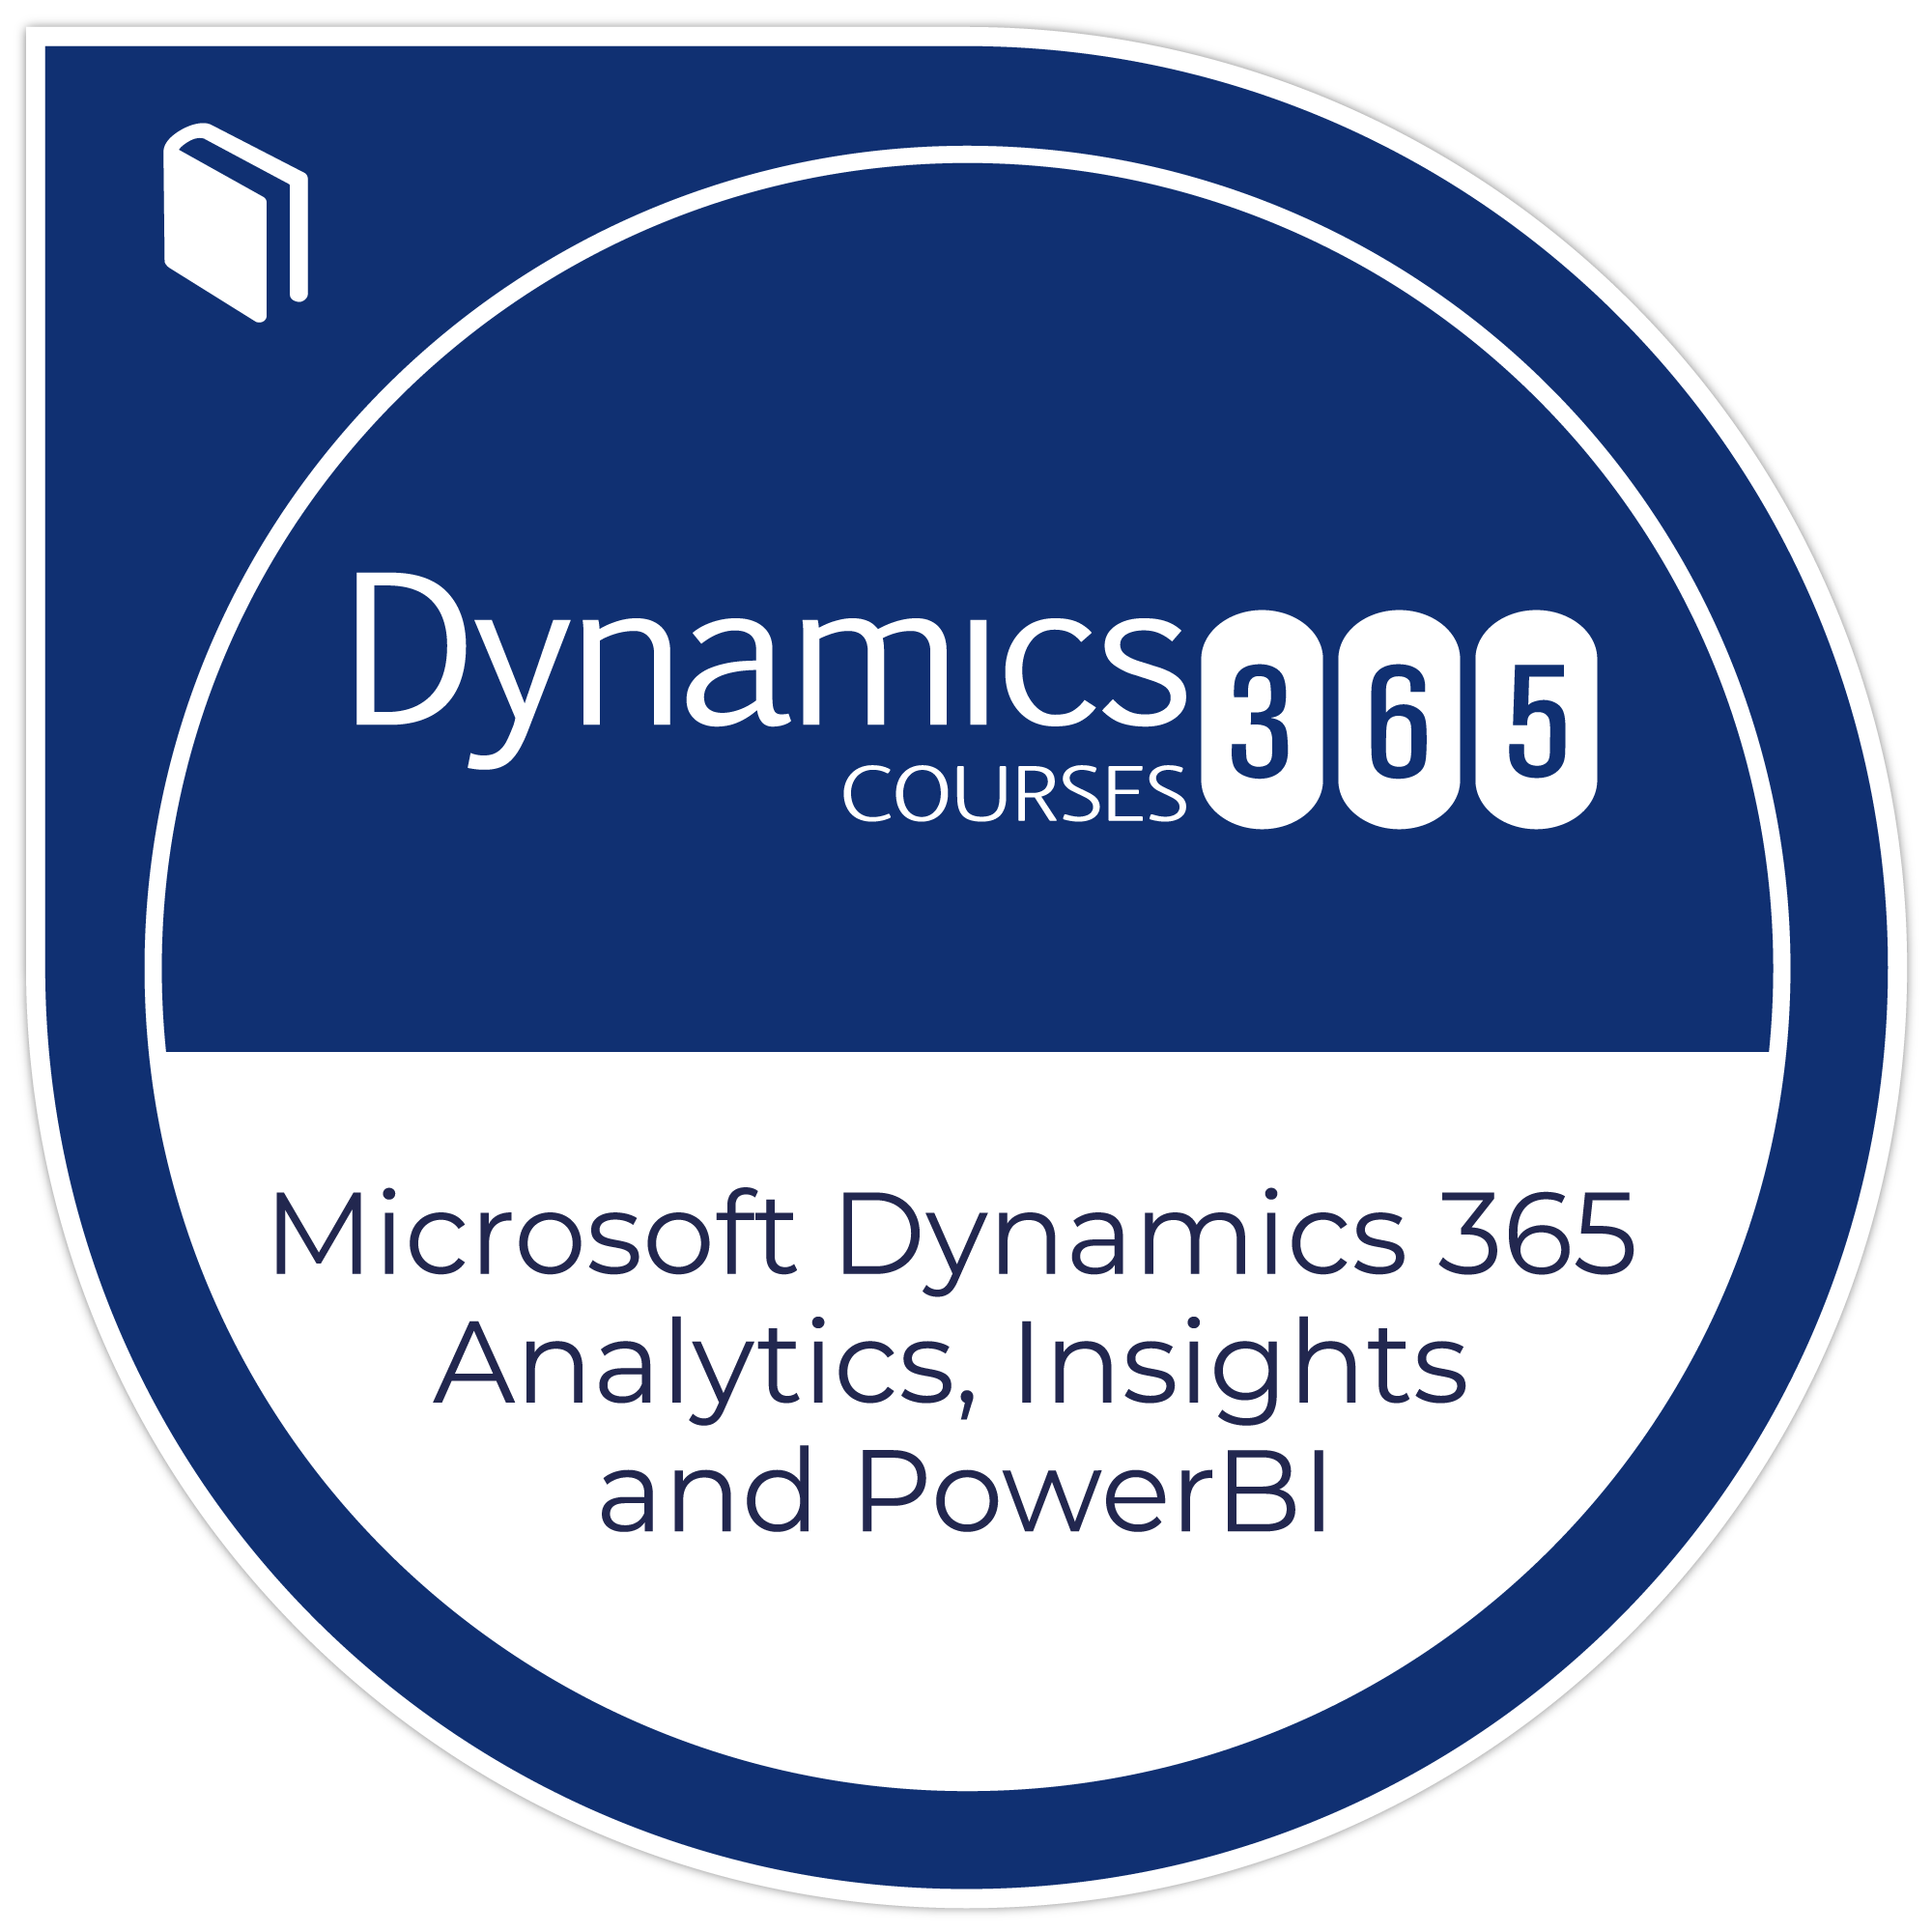 Microsoft Dynamics 365 Analytics, Insights and PowerBI